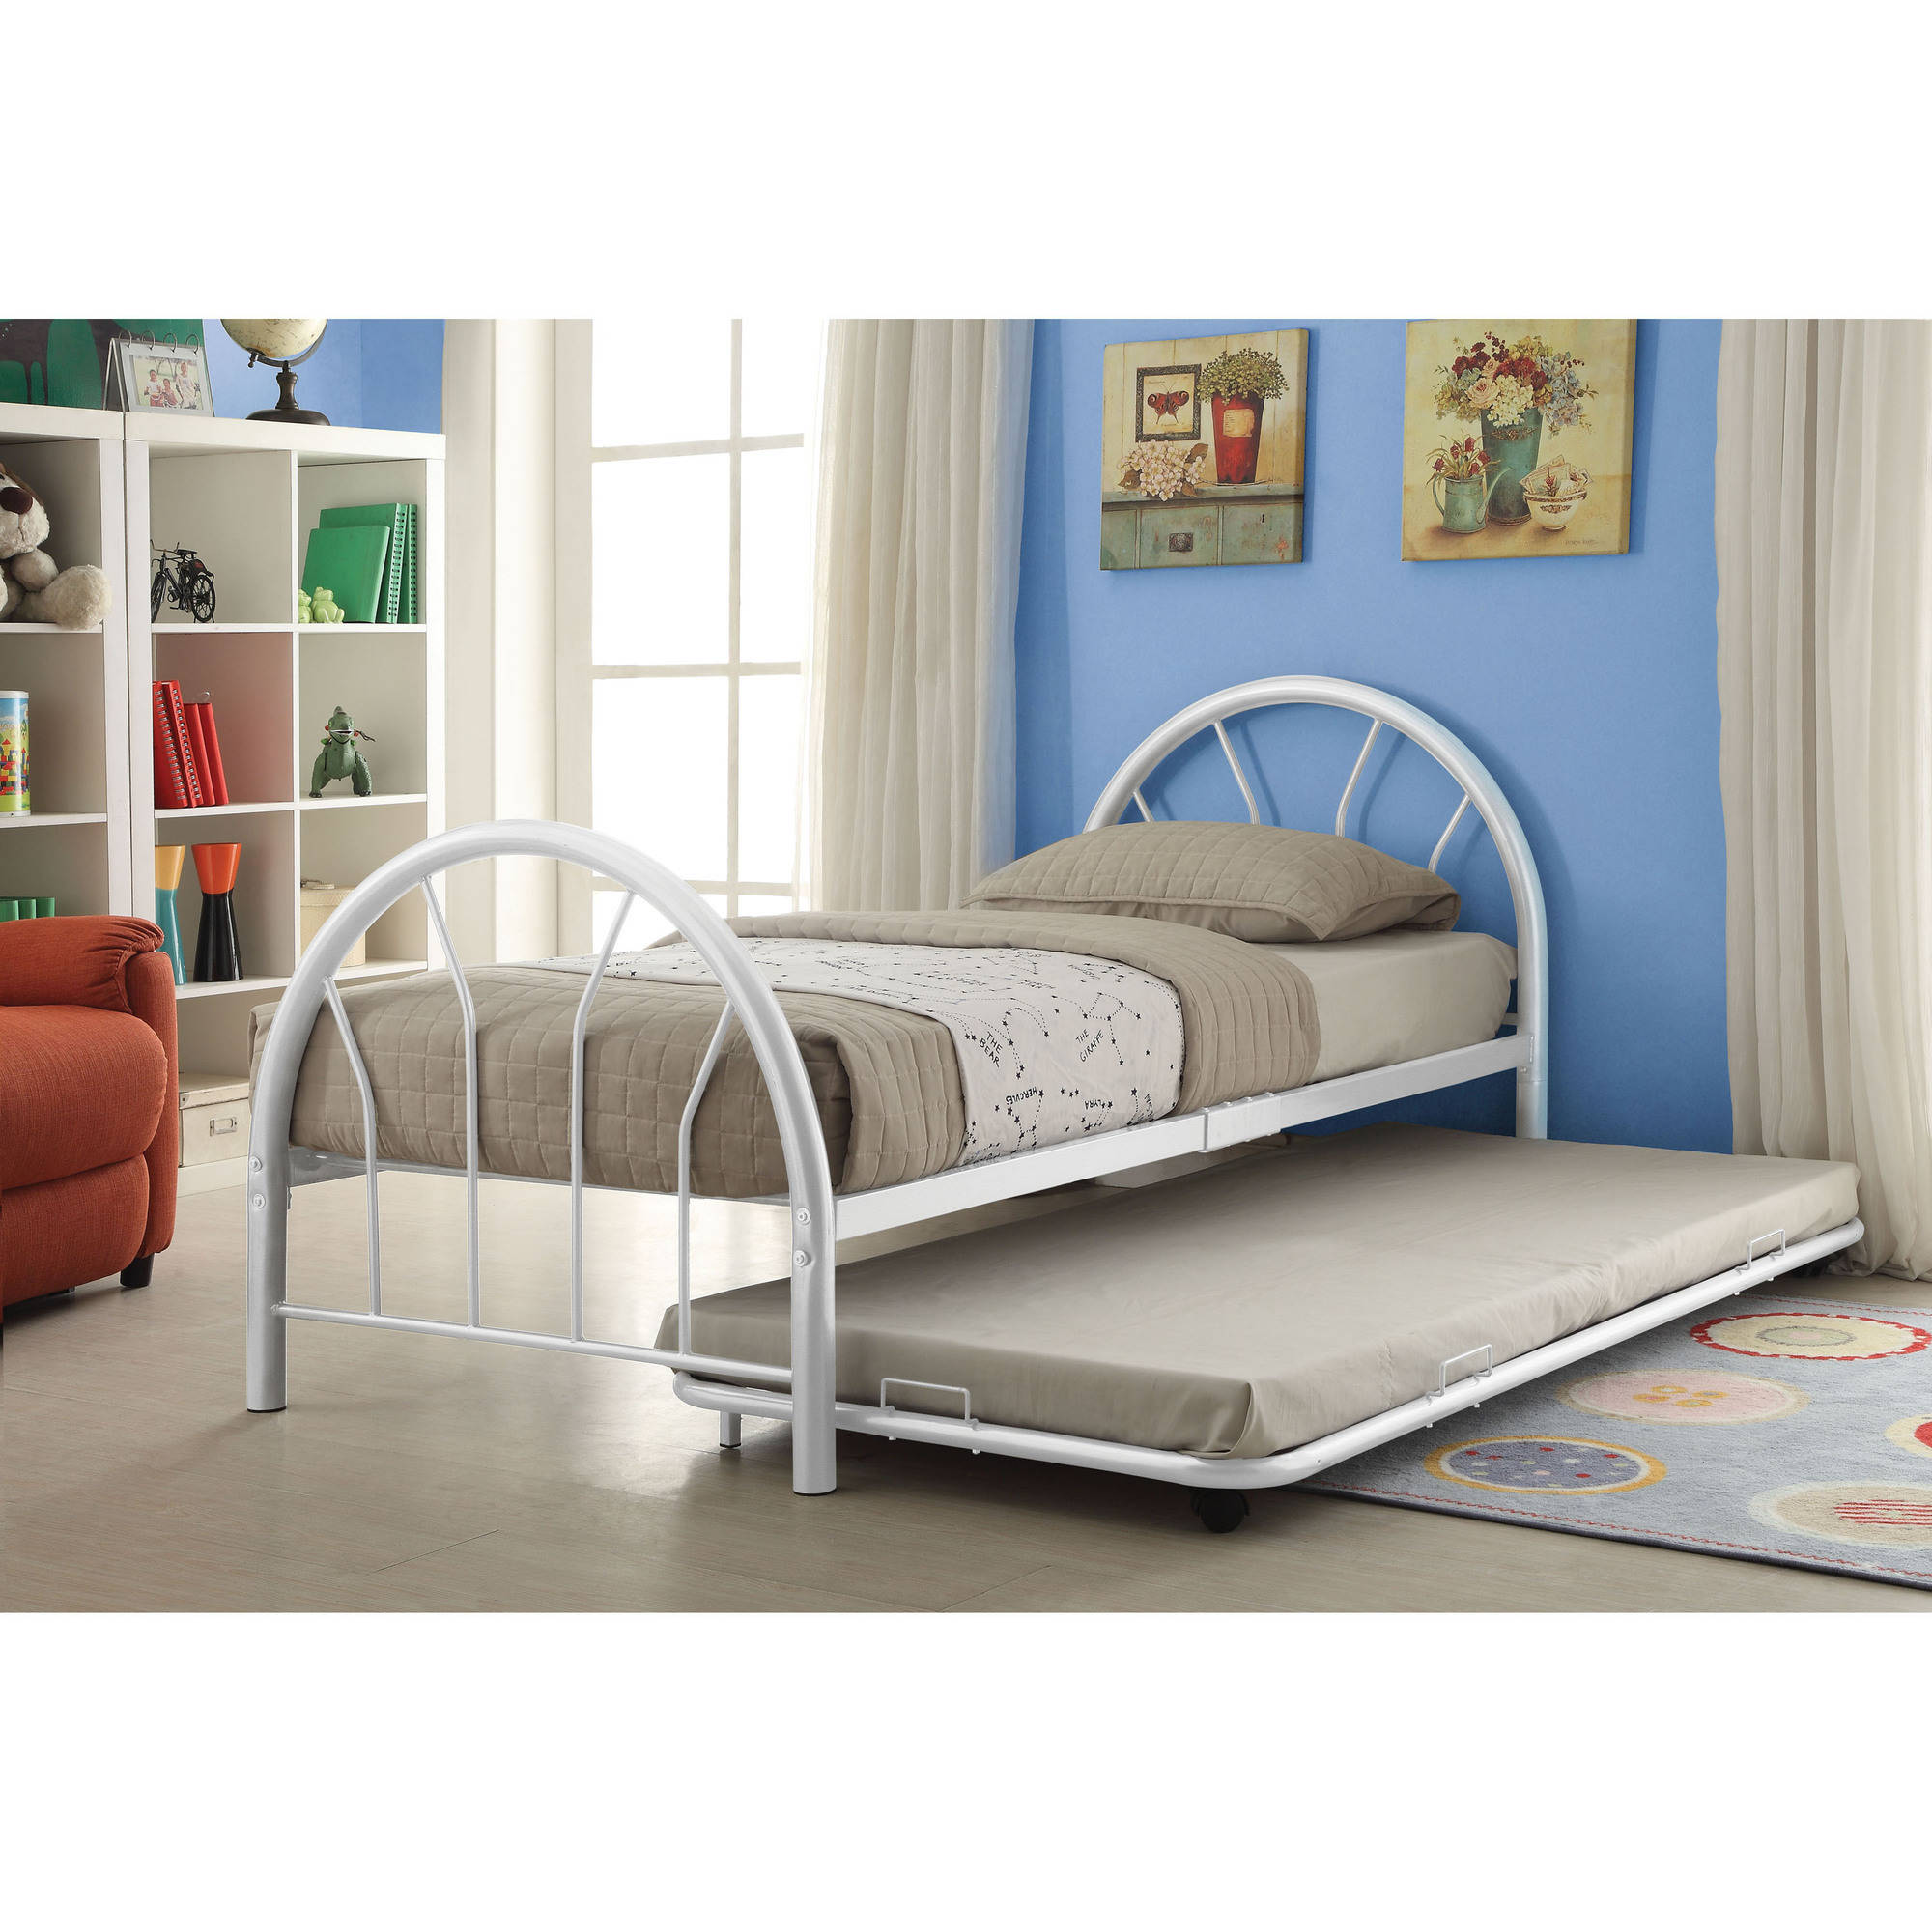 White Trundle Bed Silhouette Twin Bed With Trundle White Walmart